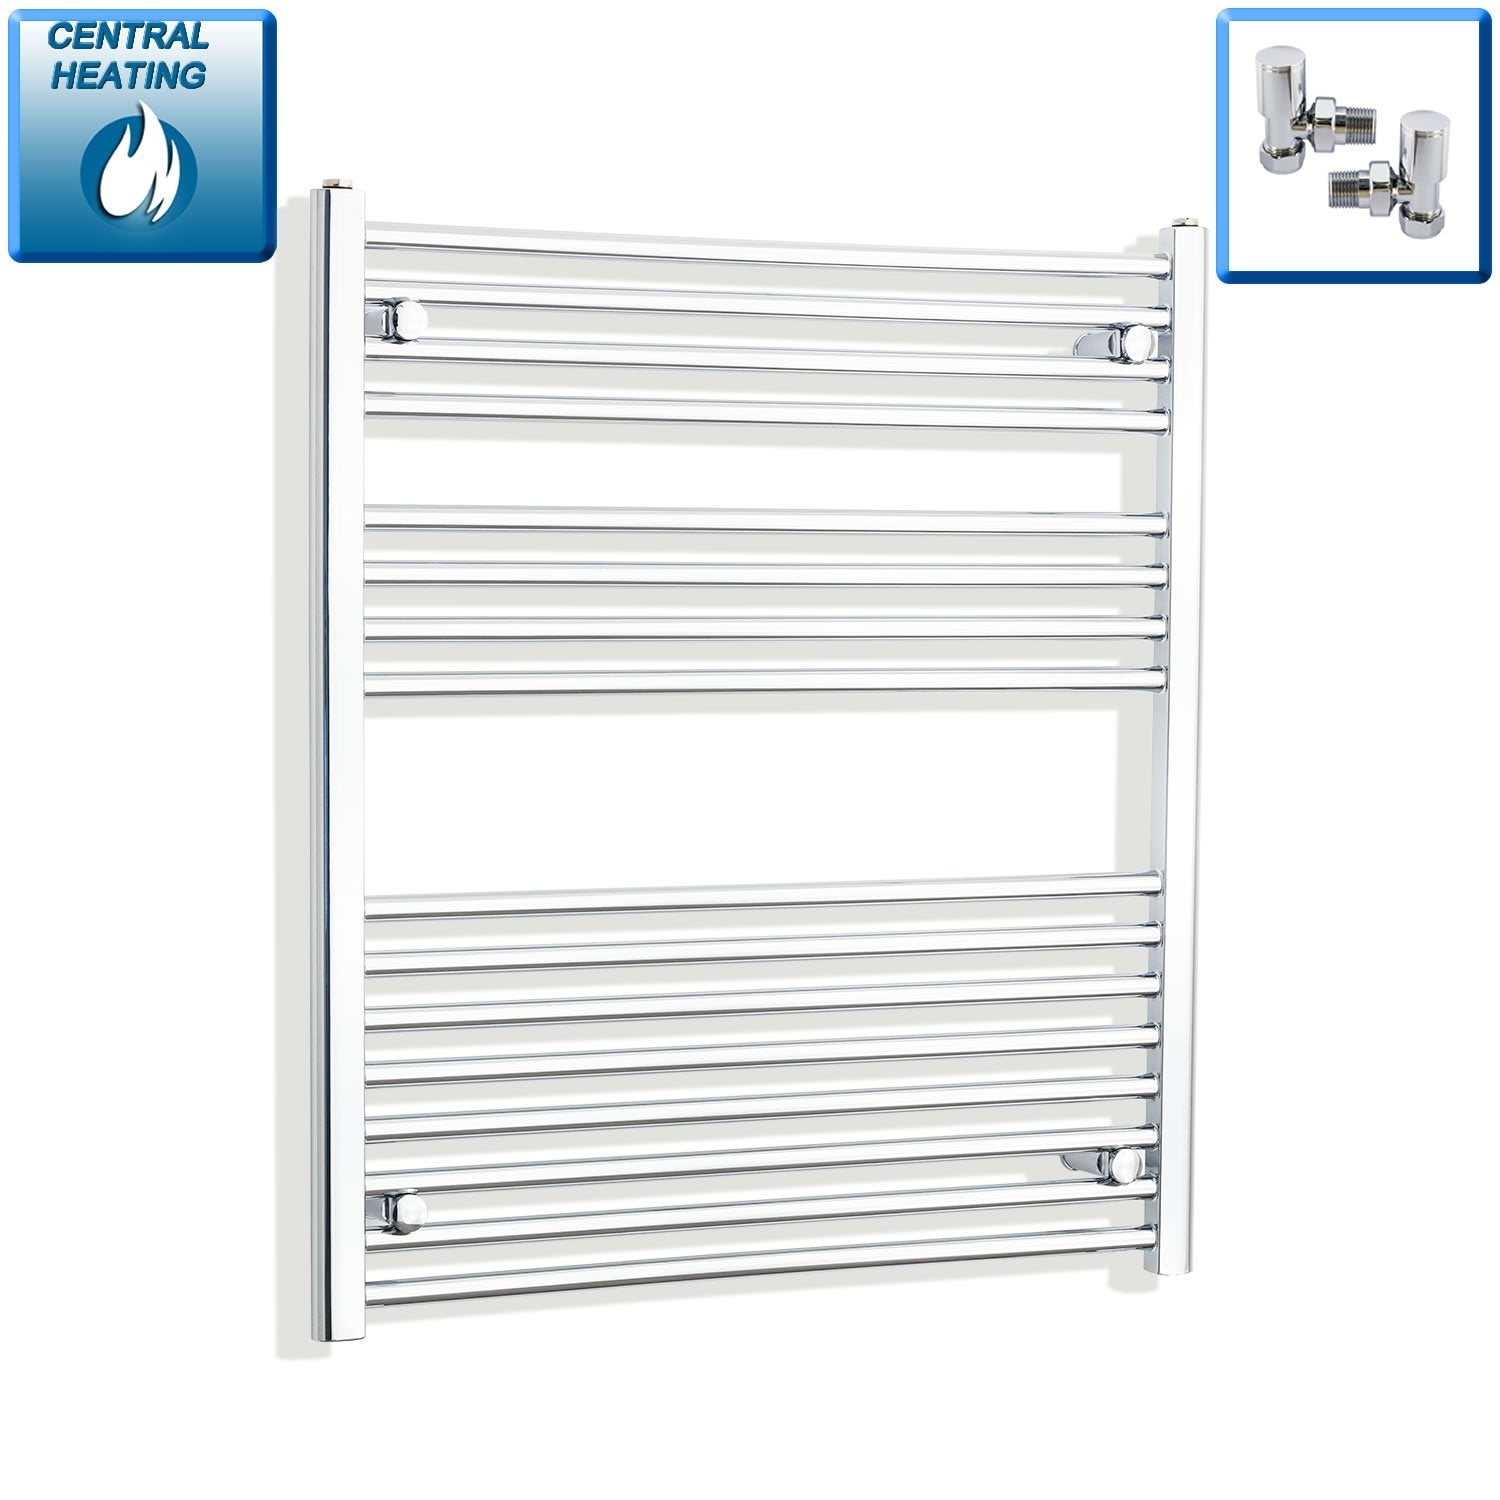 900mm Wide 1000mm High Flat Chrome Heated Towel Rail Radiator HTR,With Angled Valve